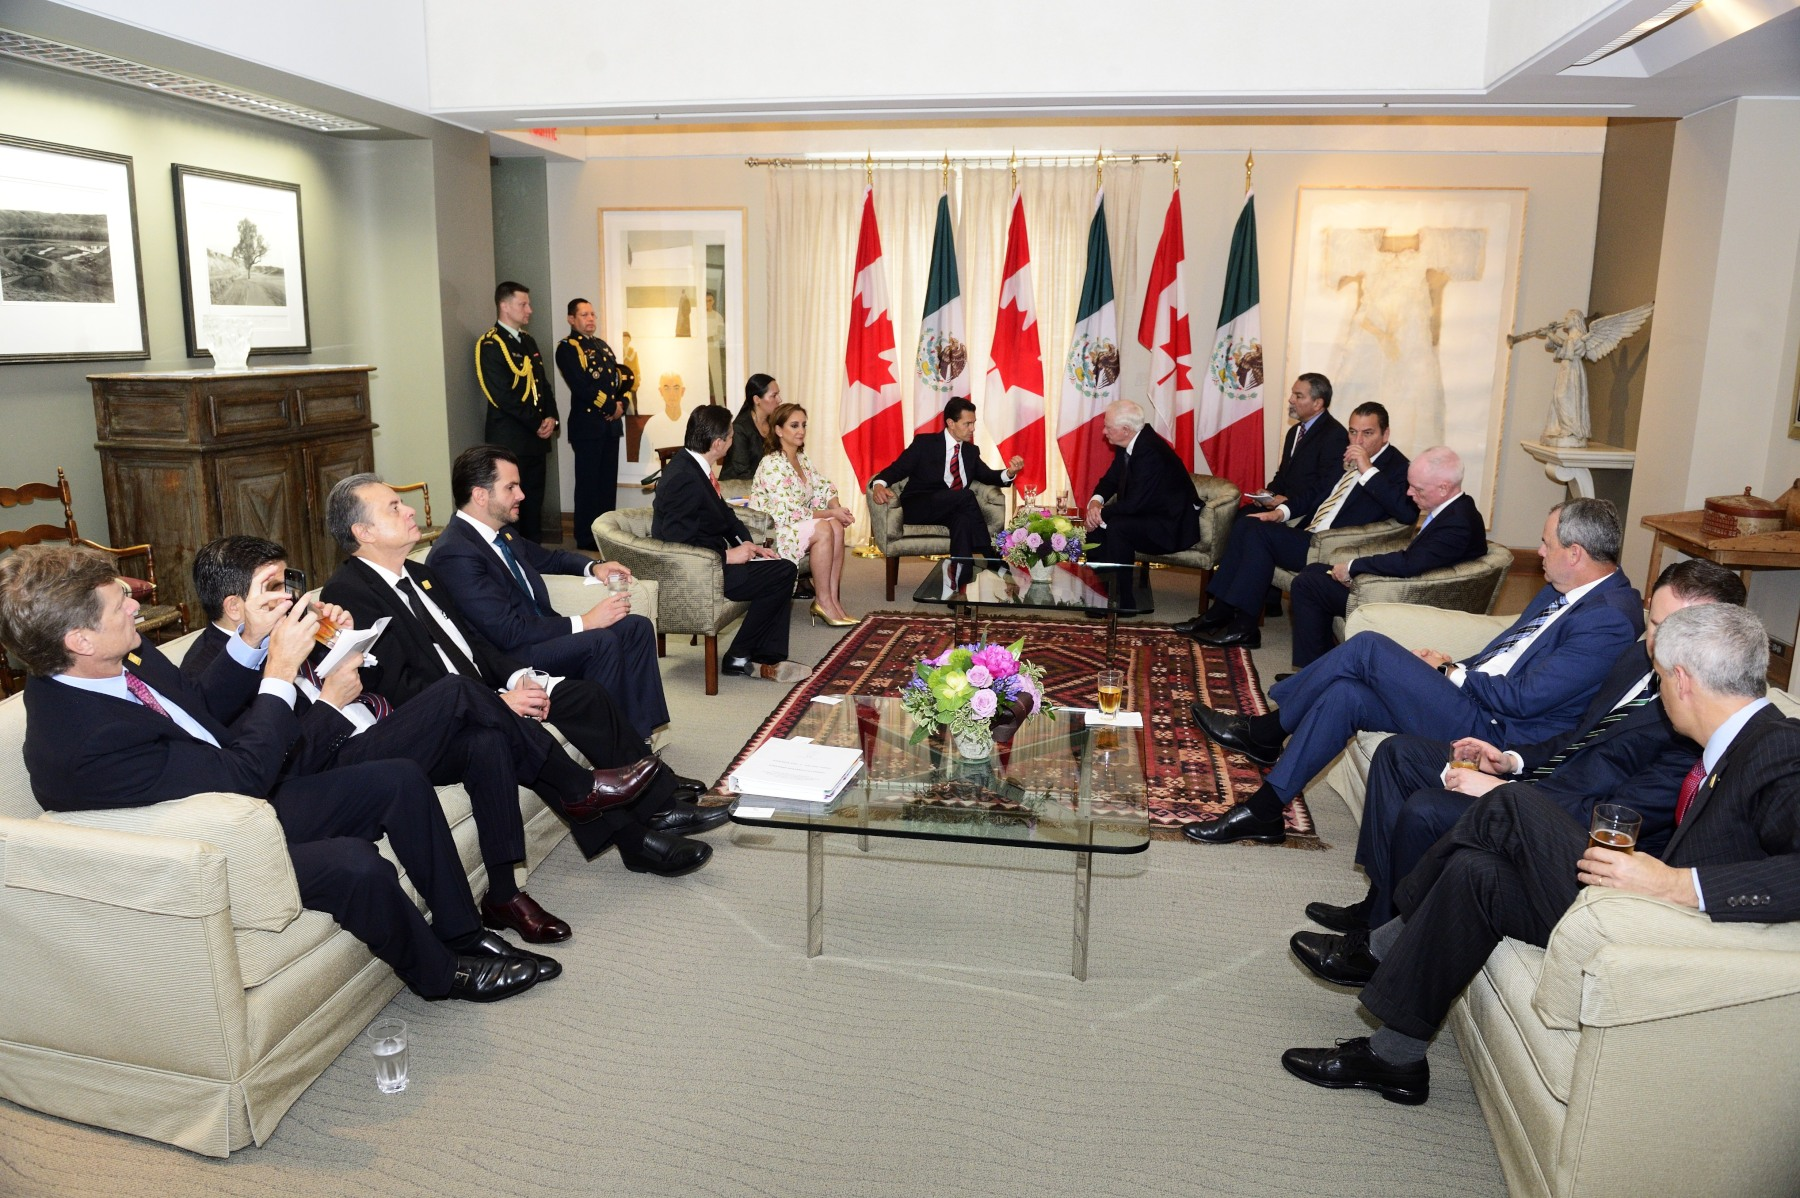 During the meeting, the Governor General and President of Mexico had the opportunity to discuss academic institutions, governments, businesses and cultural institutions.